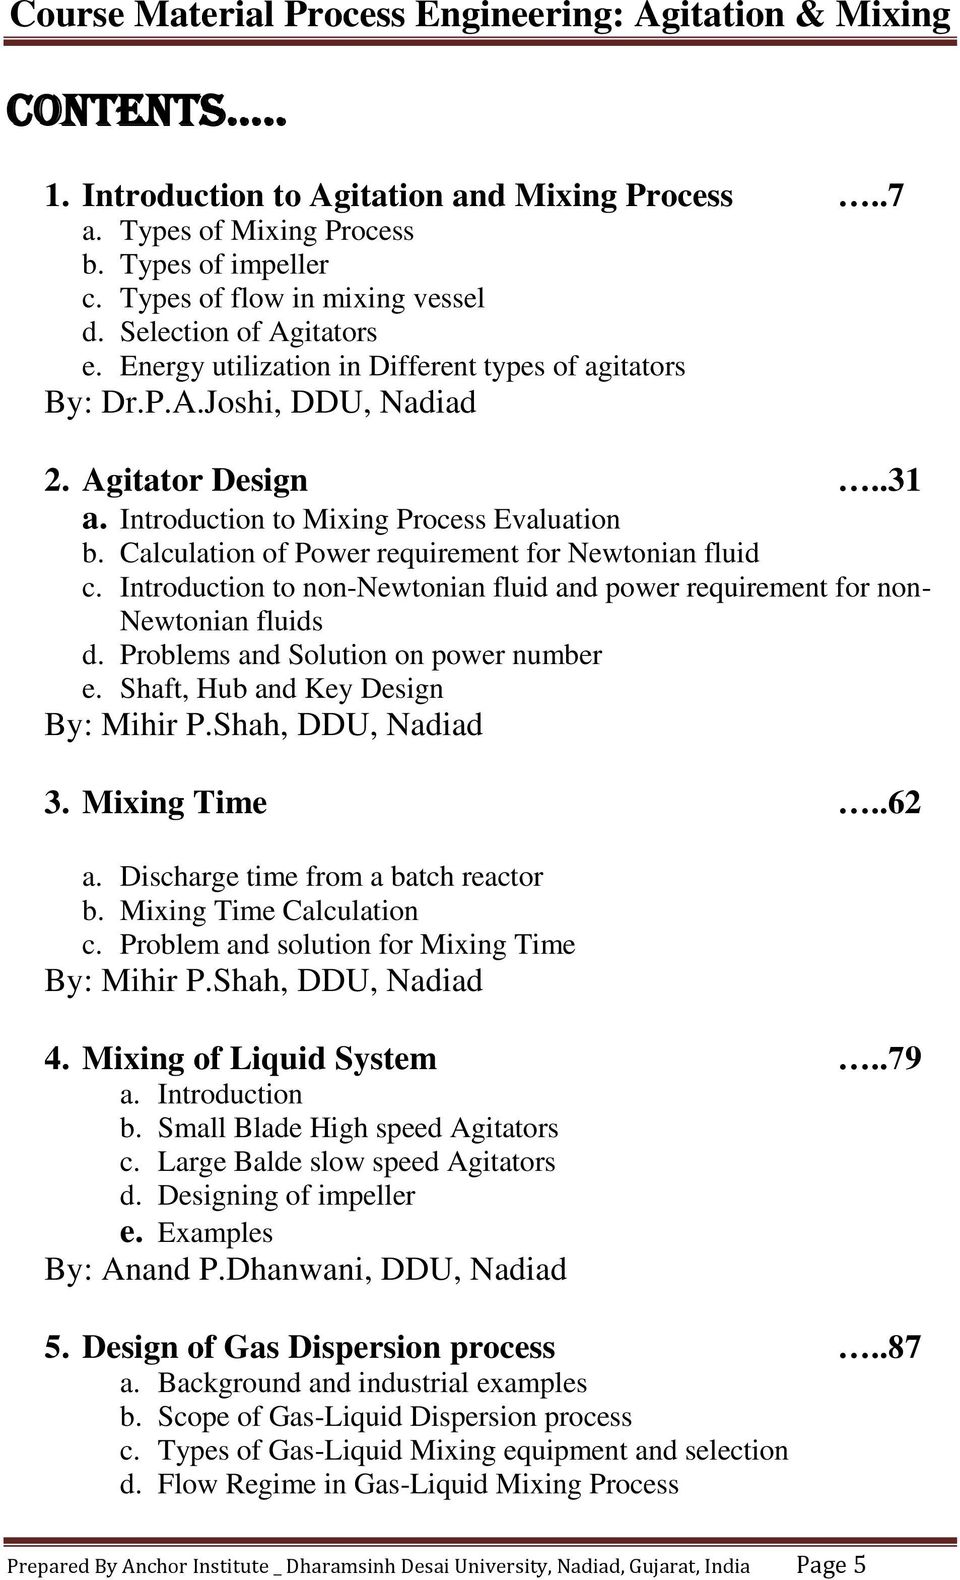 Course Material Compiled By Prof  Mihir Shah, DDU - PDF